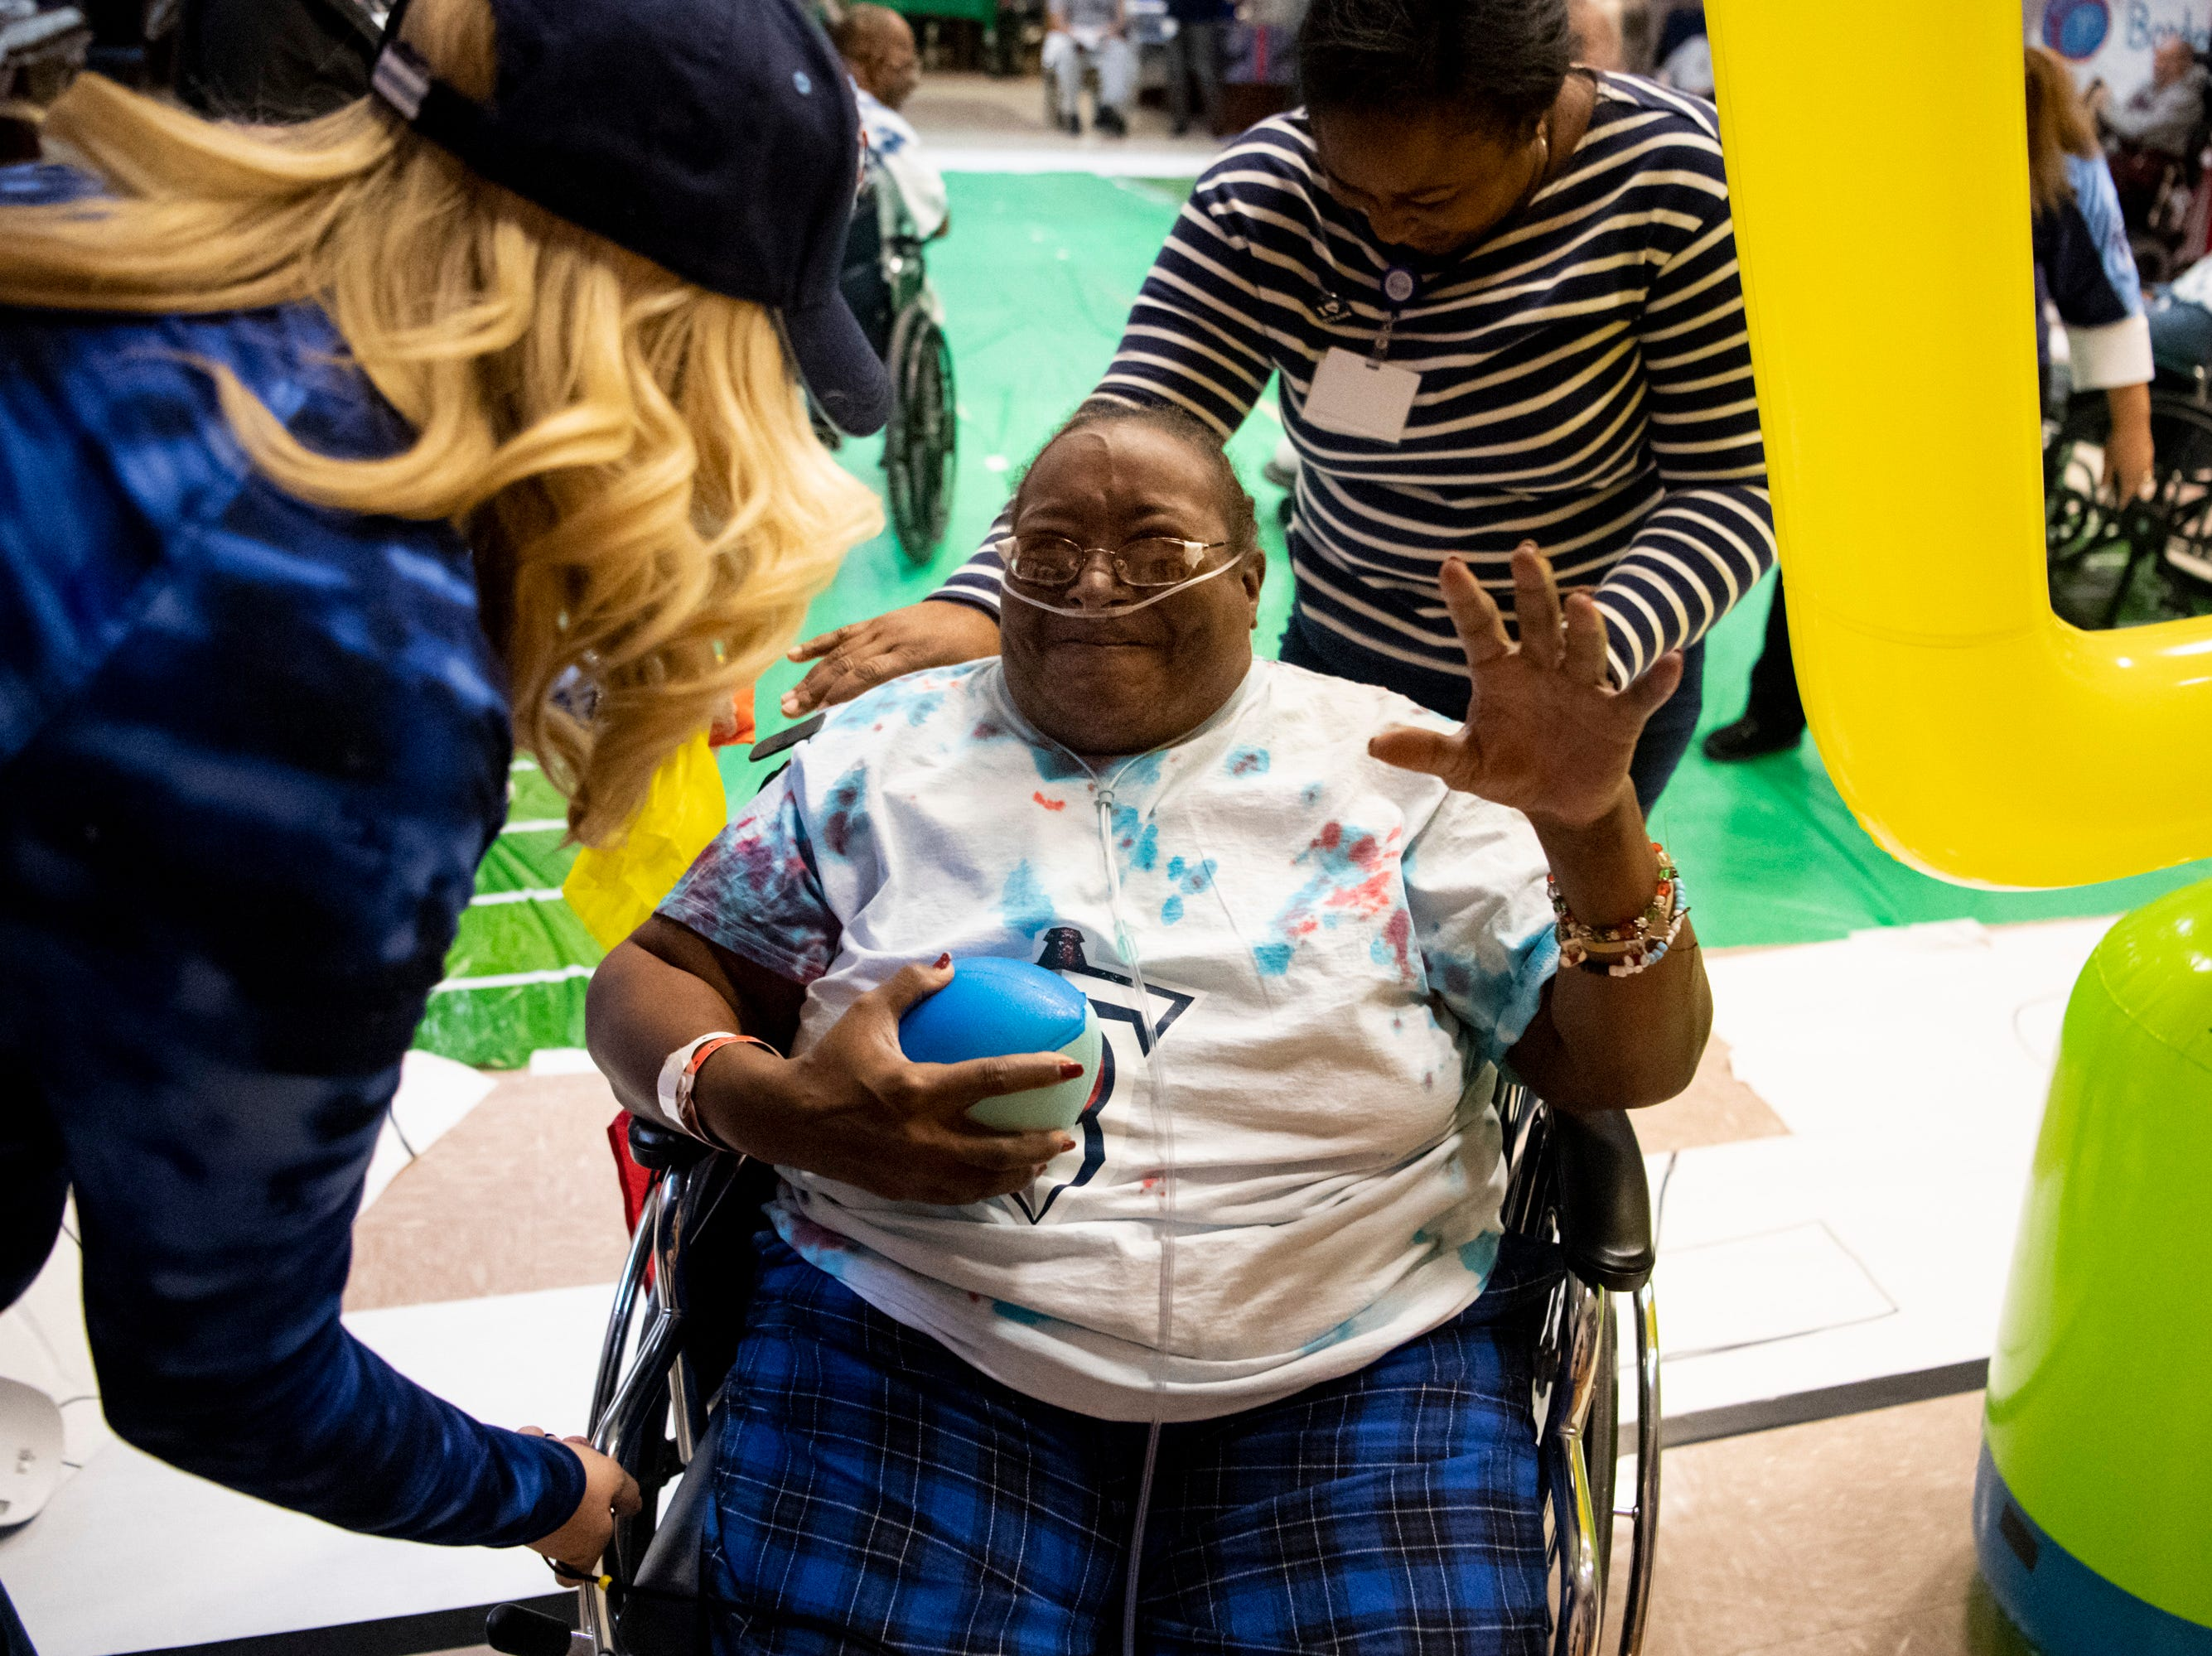 Molisha McCord reacts after scoring a touchdown during the Wheelchair Super Bowl at Nashville Community Care and Rehabilitation at Bordeaux in Nashville, Tenn., Friday, Feb. 1, 2019.